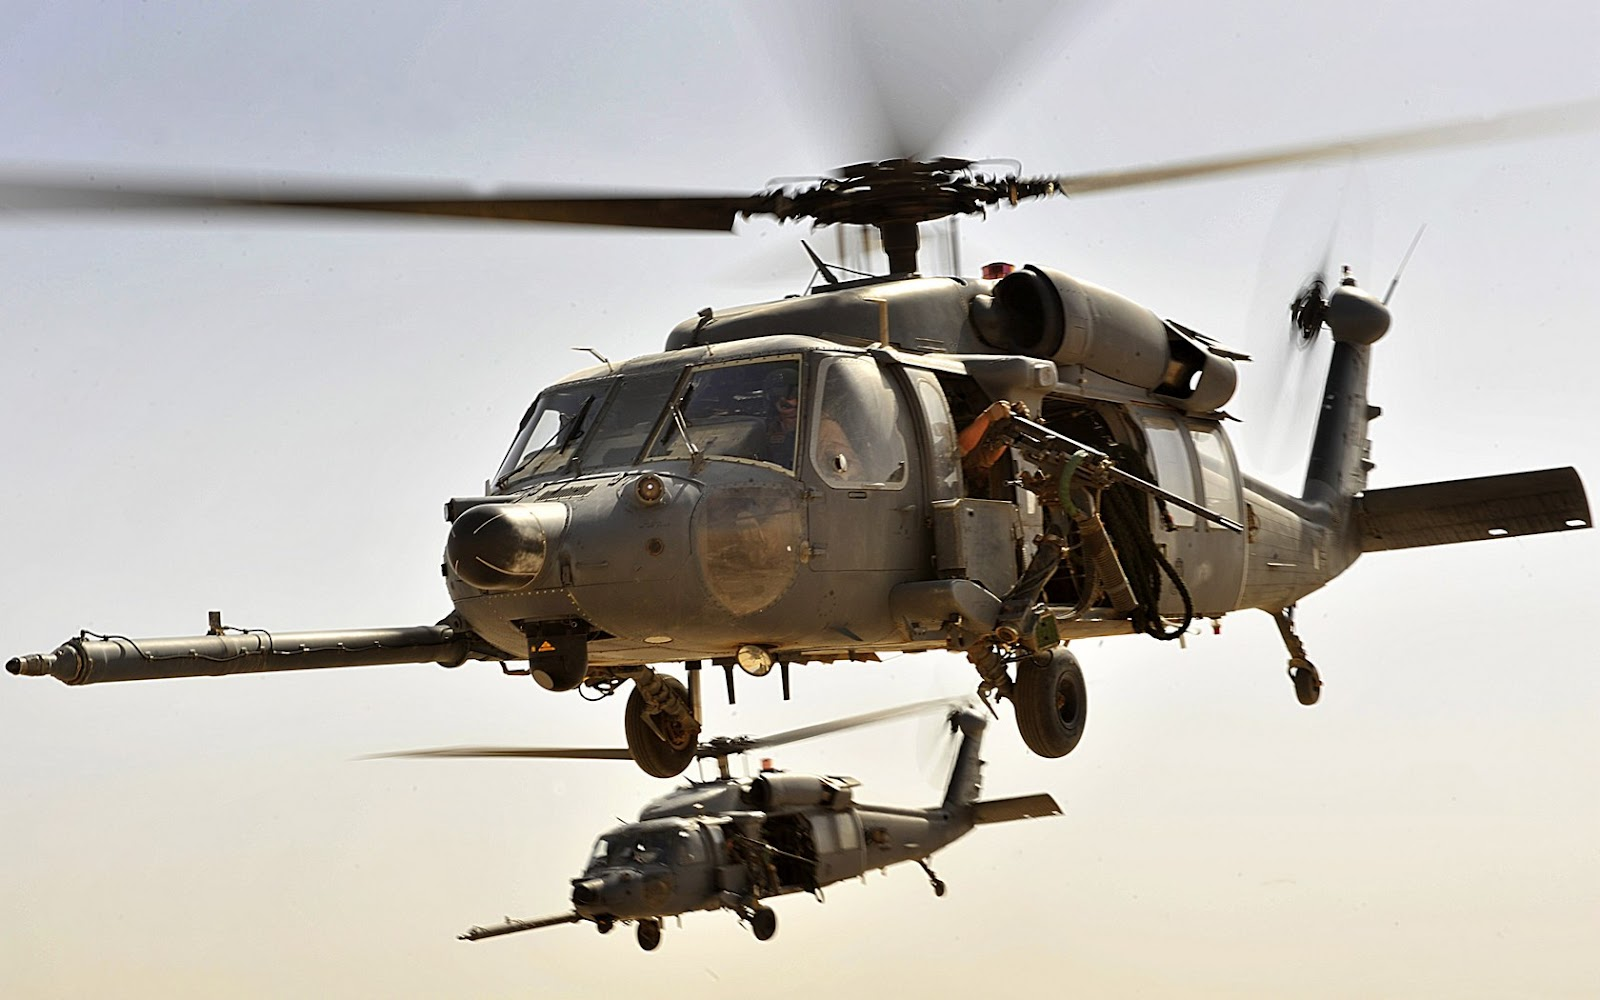 hh 60g pave hawk helicopter with Top 41 Most Incredible And Amazing on Military photos 20100825235553 moreover Watch moreover Hh 60 Pics further File Helicopter aerial refueling together with The Road To Pj Part Three Earning The Beret.